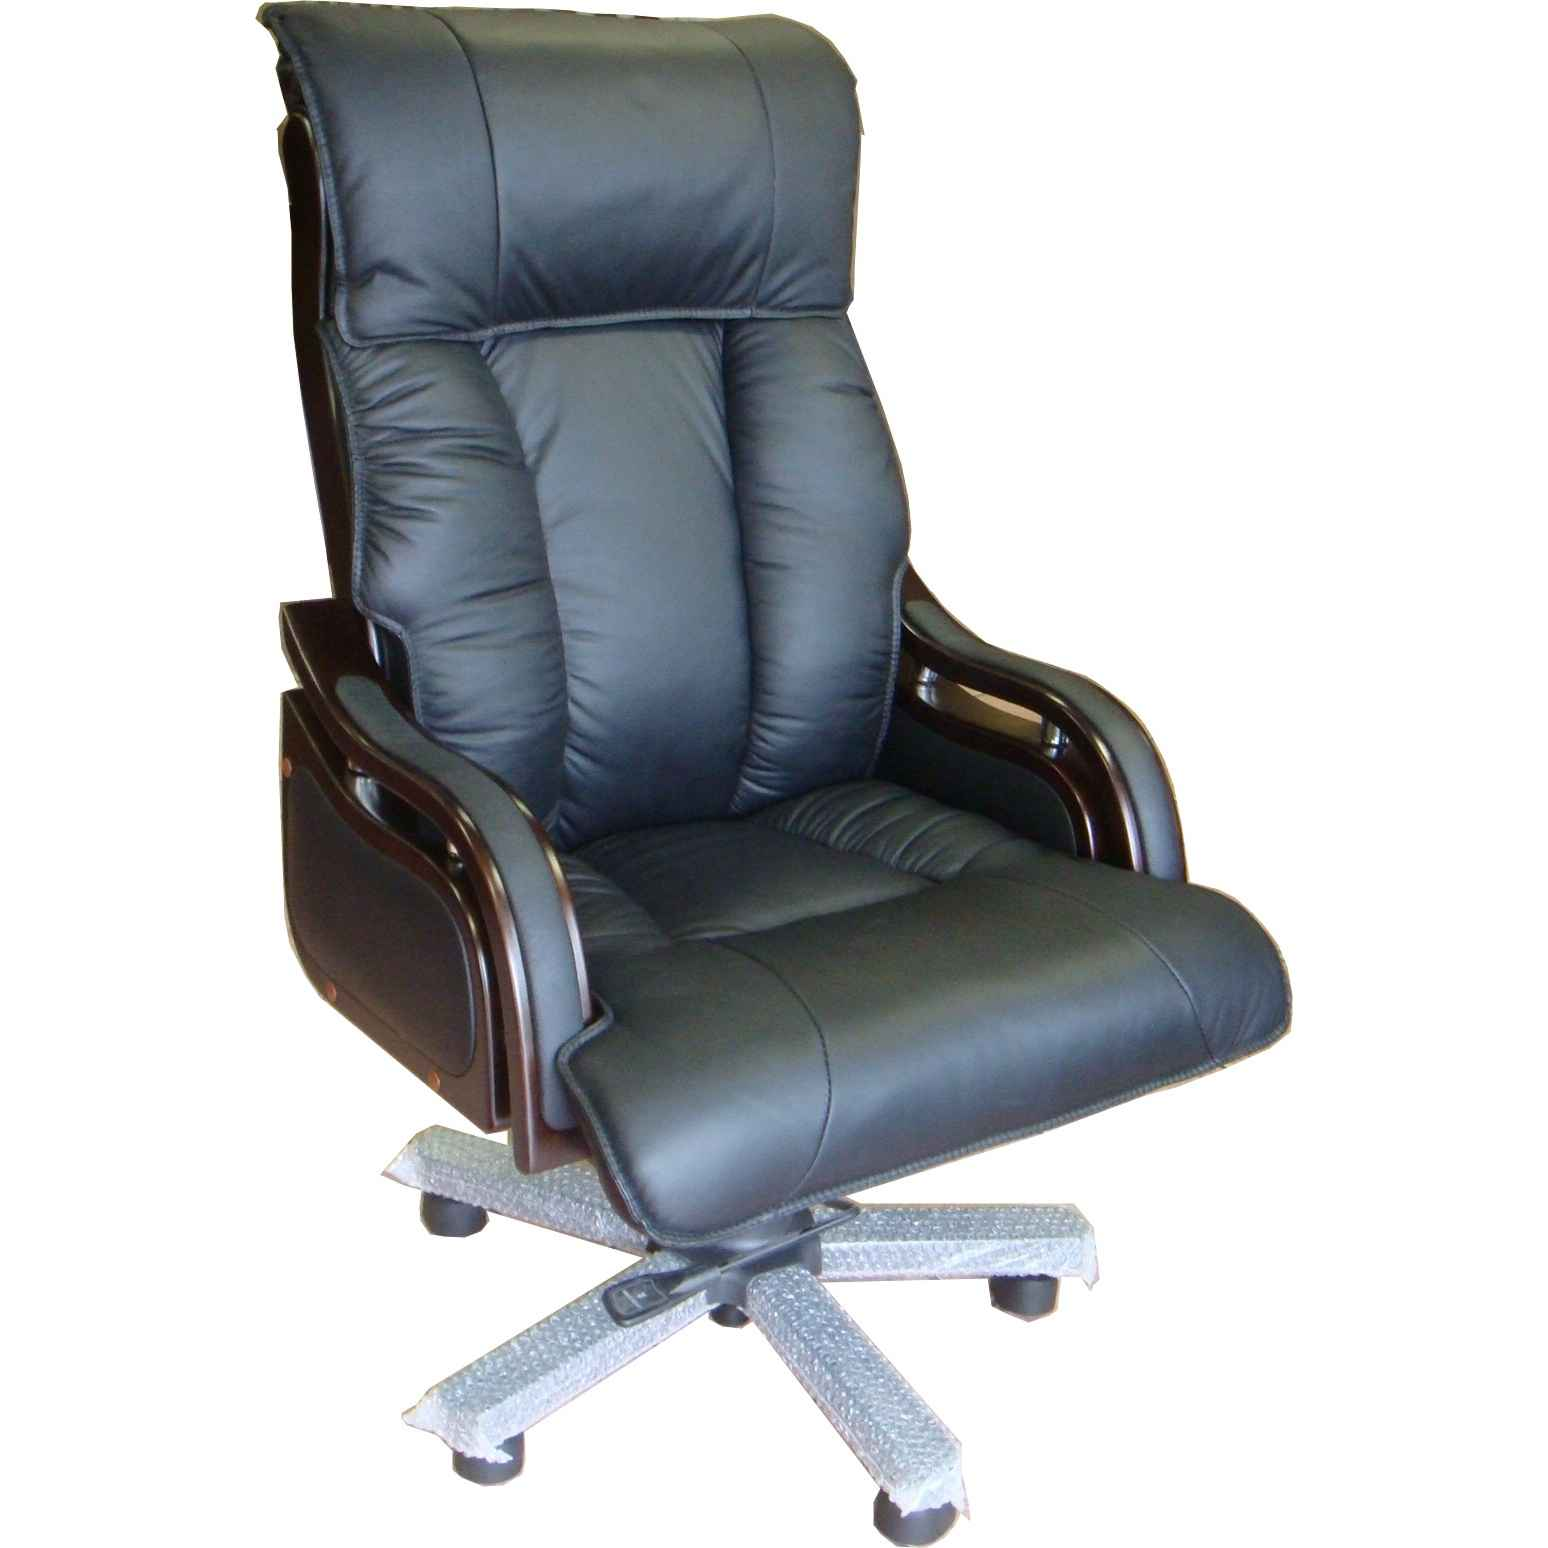 Executive high back black leather desk chair